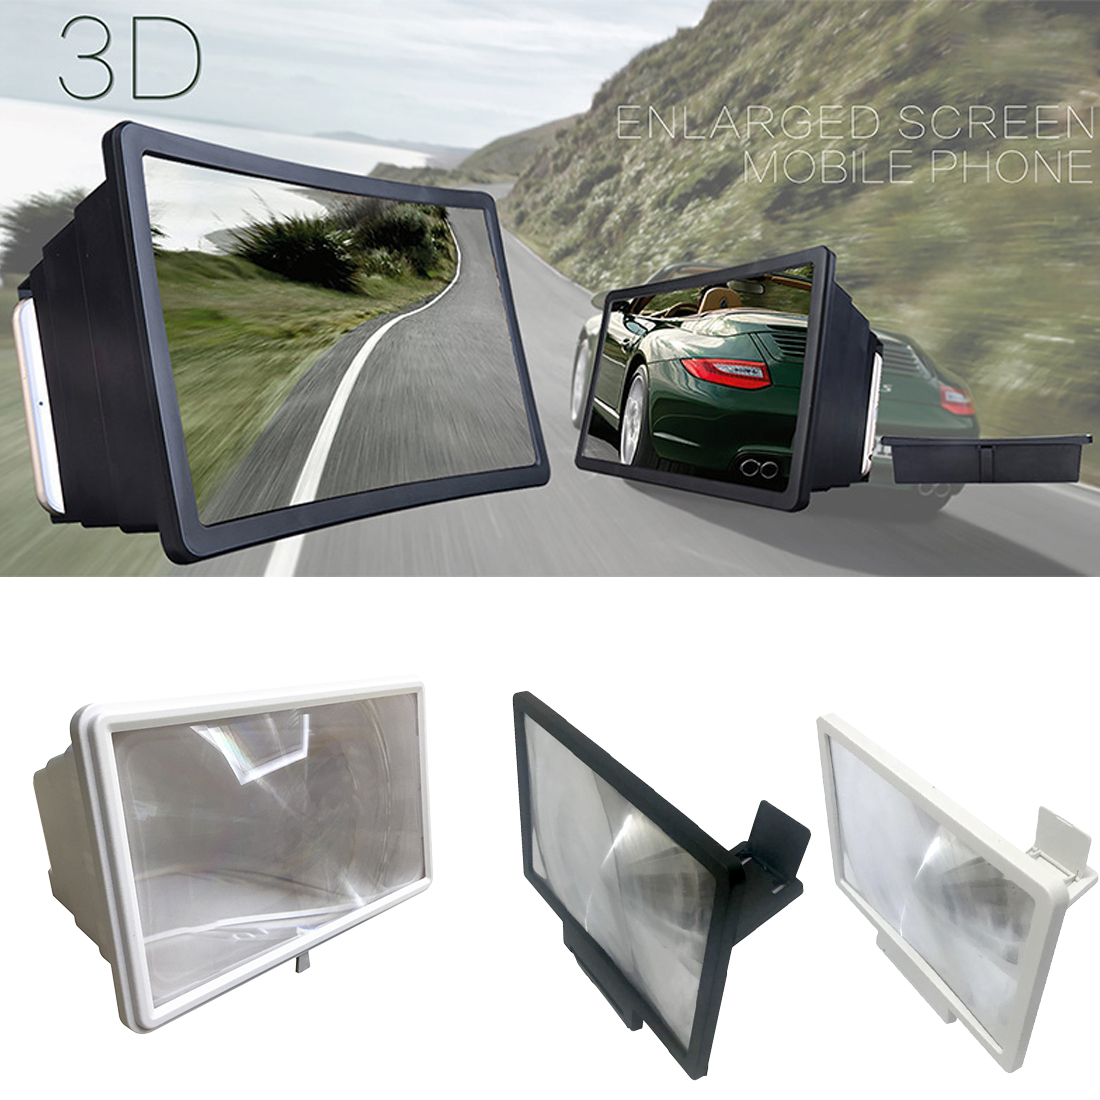 3D HD Movie Video Amplifier Simple Generous Cell Phone Screen Magnifier With Foldable Holder Stand